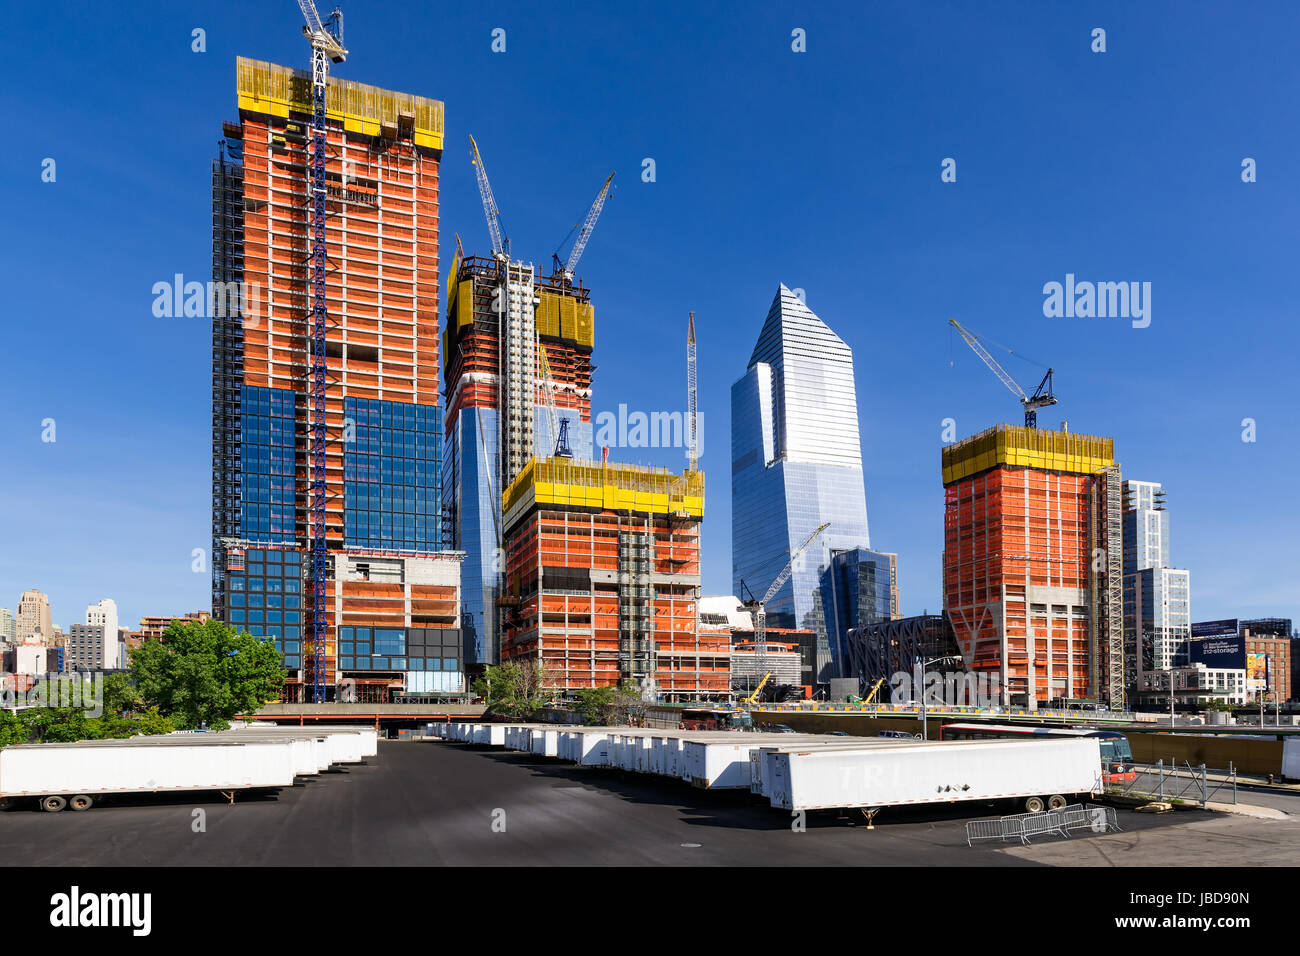 Le Hudson Yards chantier de construction (2017). Midtown, Manhattan, New York City Photo Stock